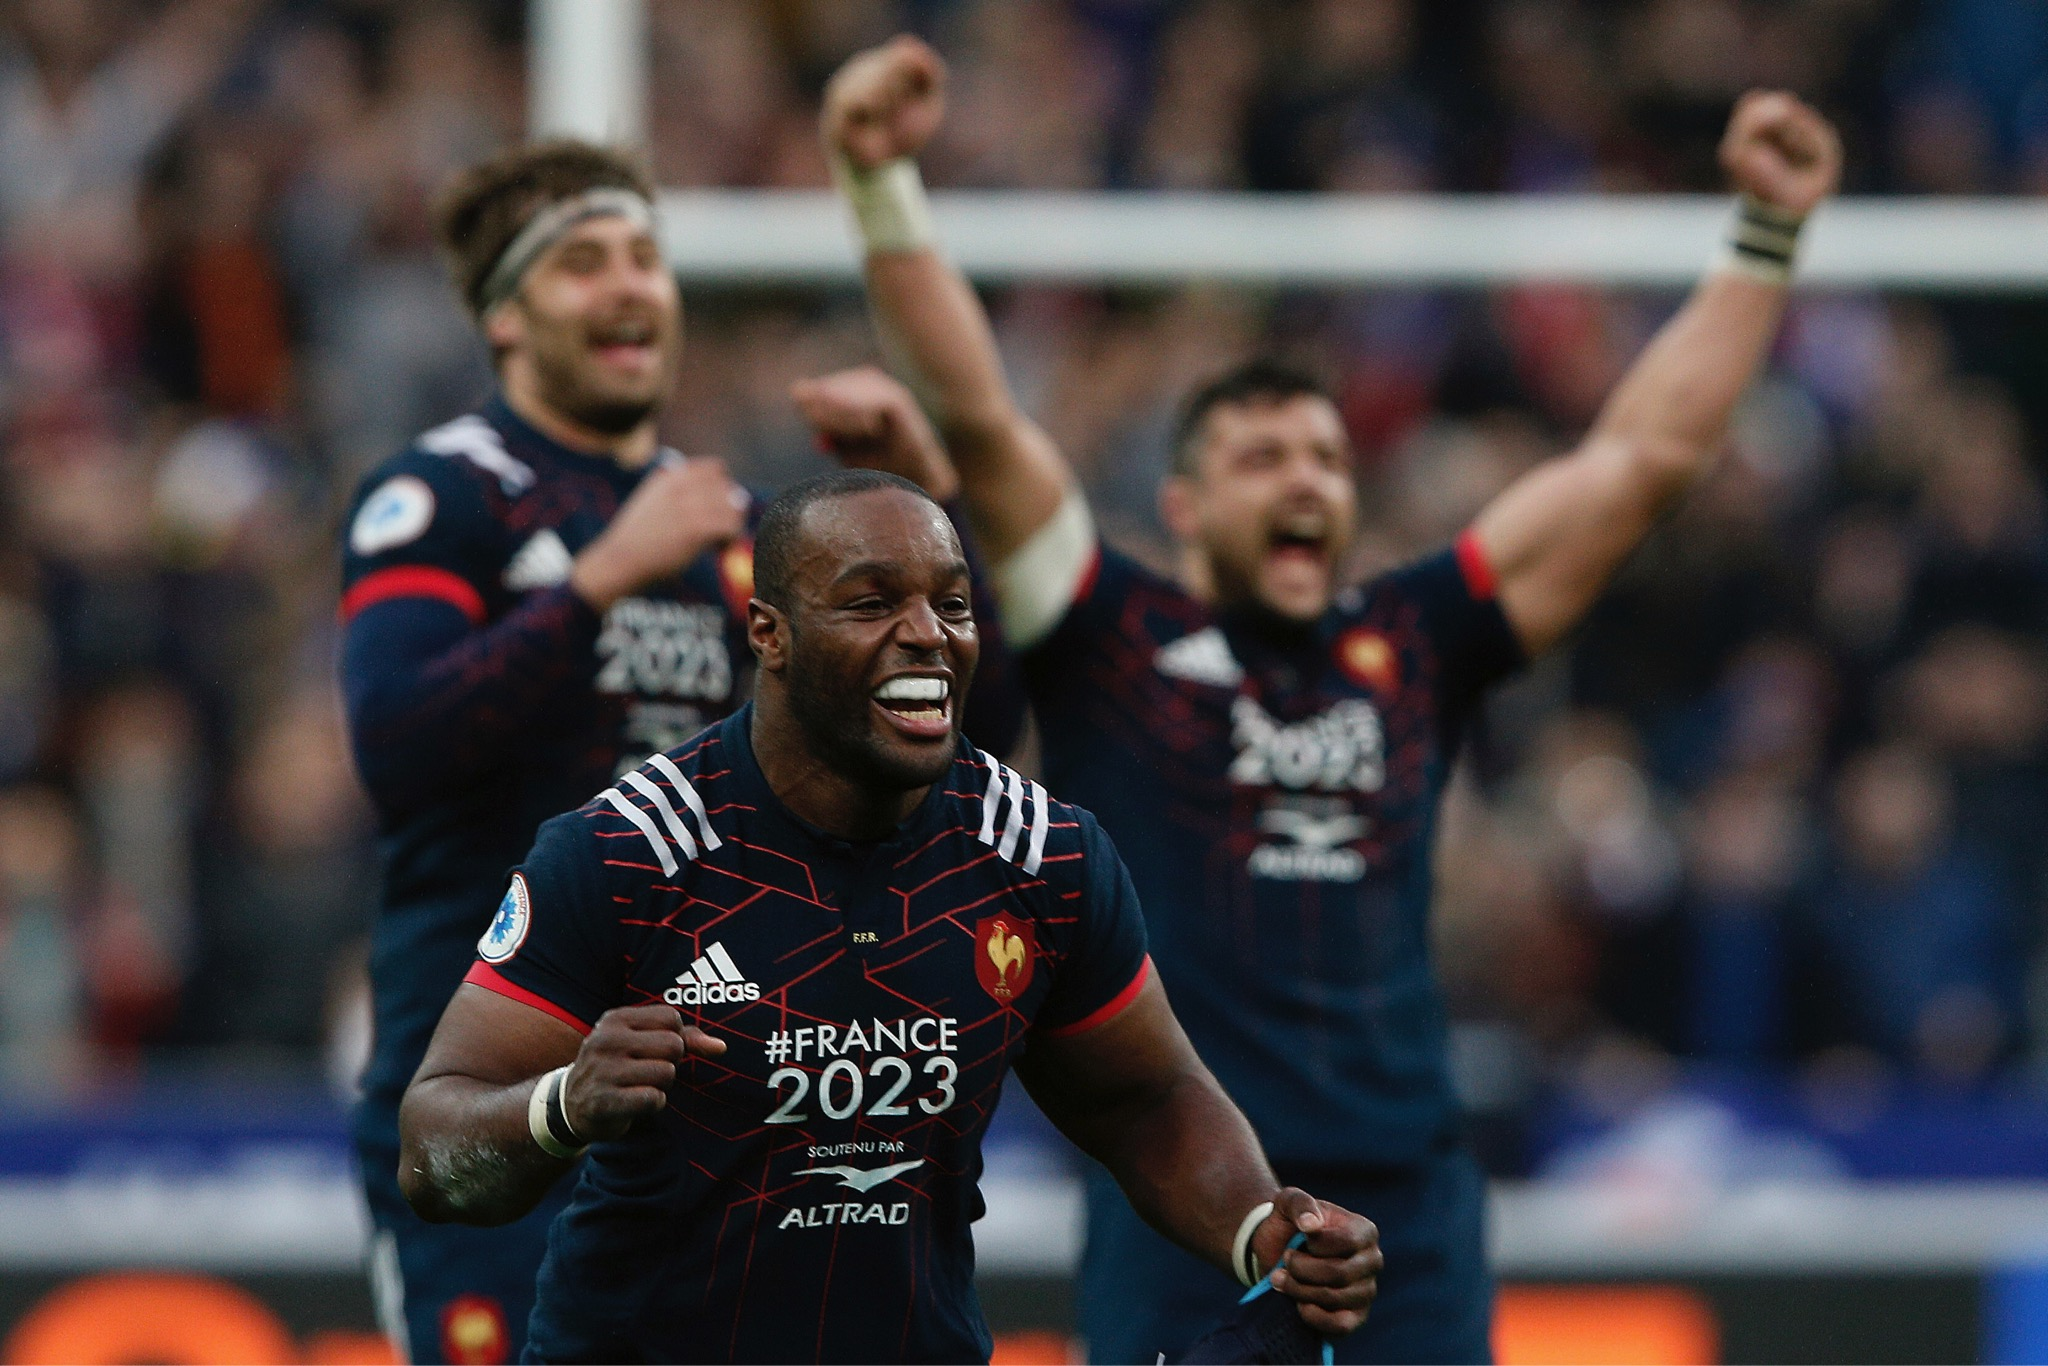 French players celebrate their 20-18 victory over Wales in their Six Nations rugby union international at the Stade de France stadium, in Saint Denis, north of Paris, Saturday, March 18. (AP Photo/Thibault Camus)